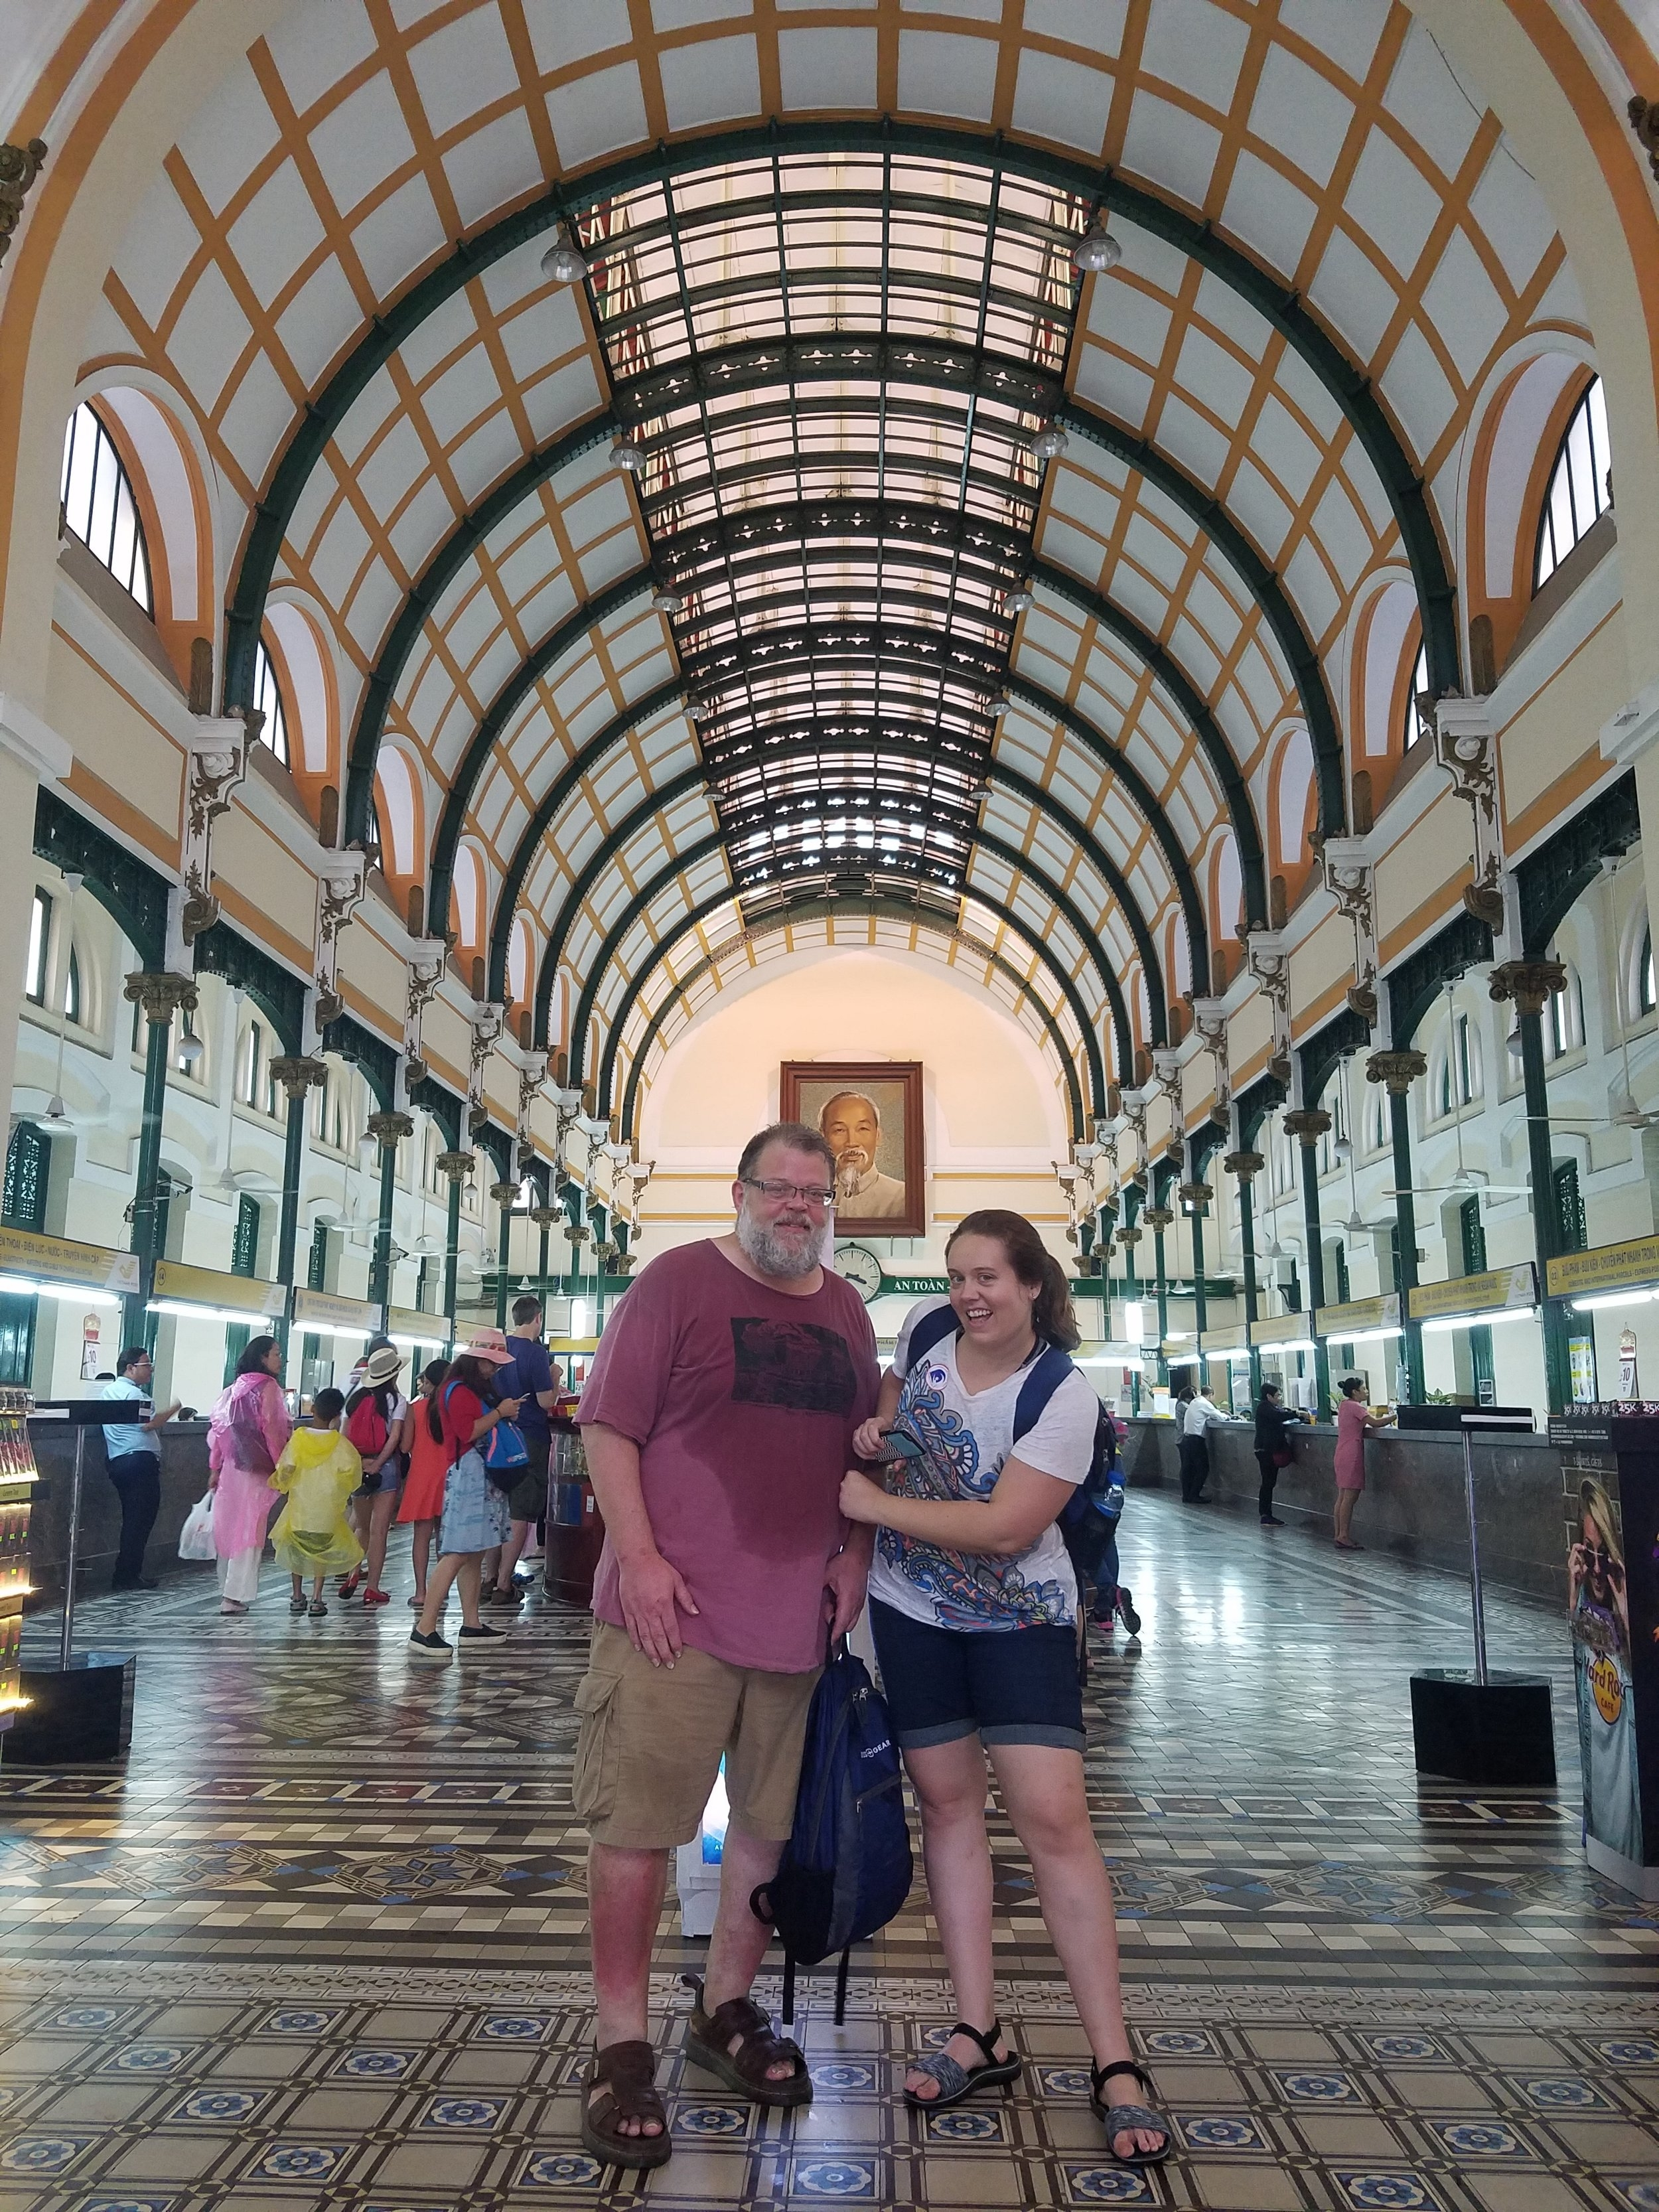 In the Ho Chi Minh Post Office